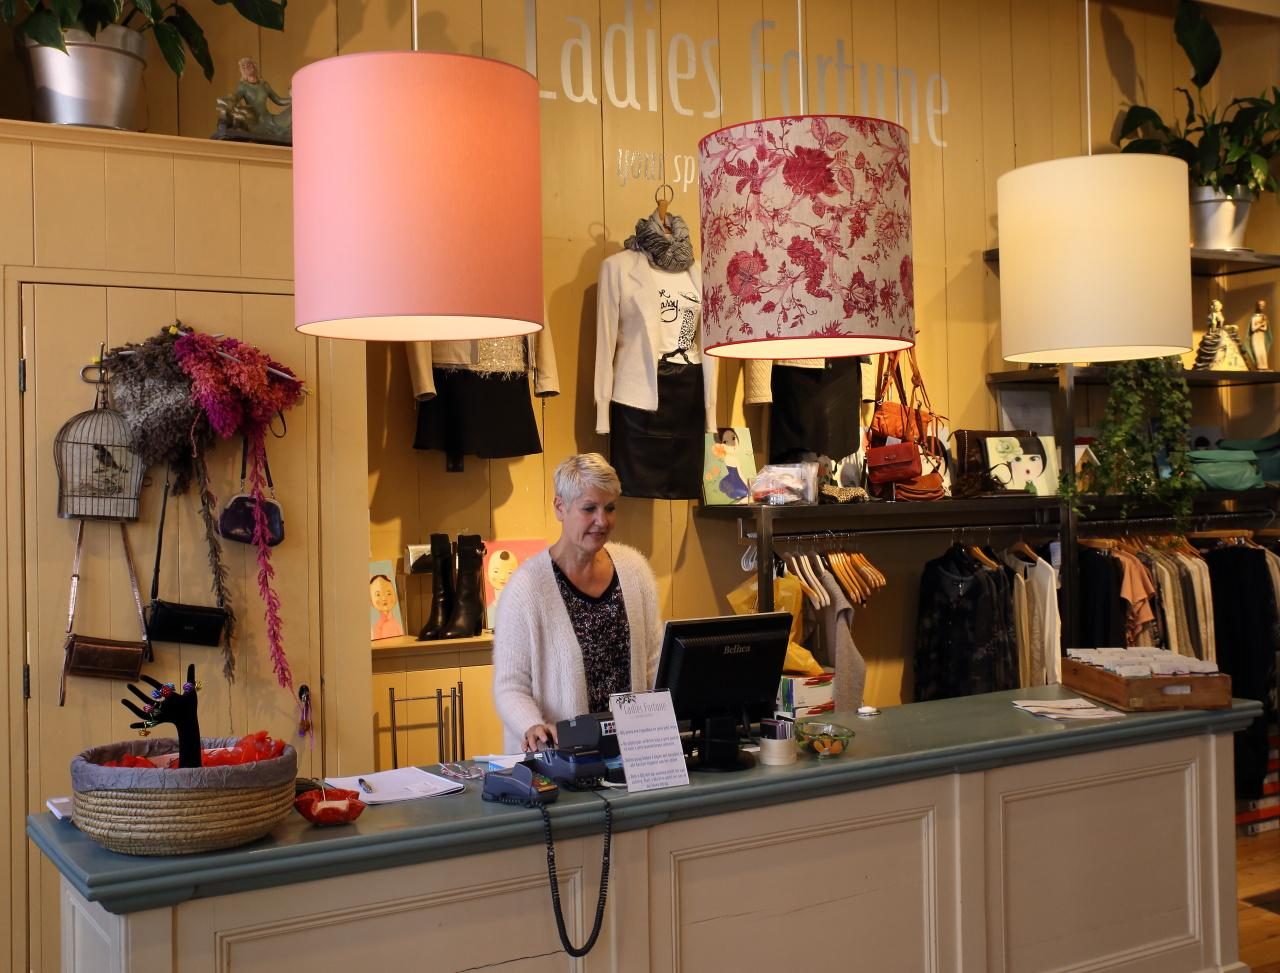 Photo Ladies Fortune in Purmerend, Shopping, Fashion & clothing - #1